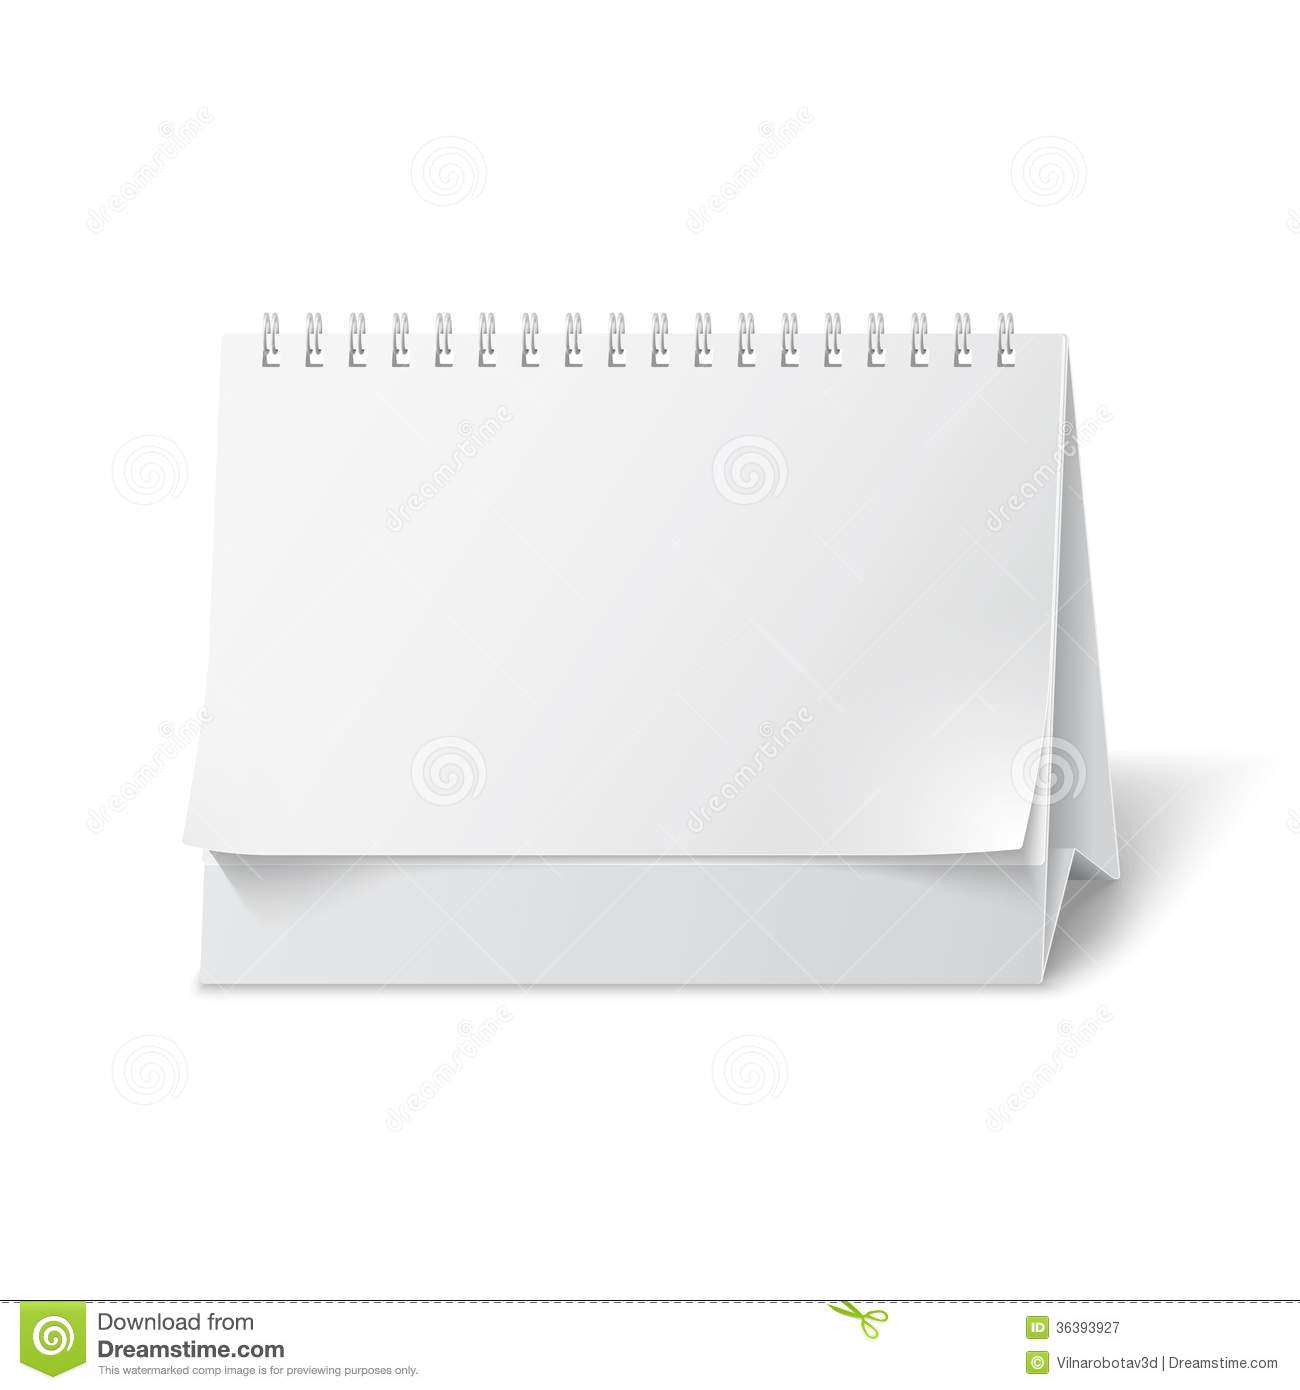 Blank Calendar Svg : Blank paper desk calendar royalty free stock photography